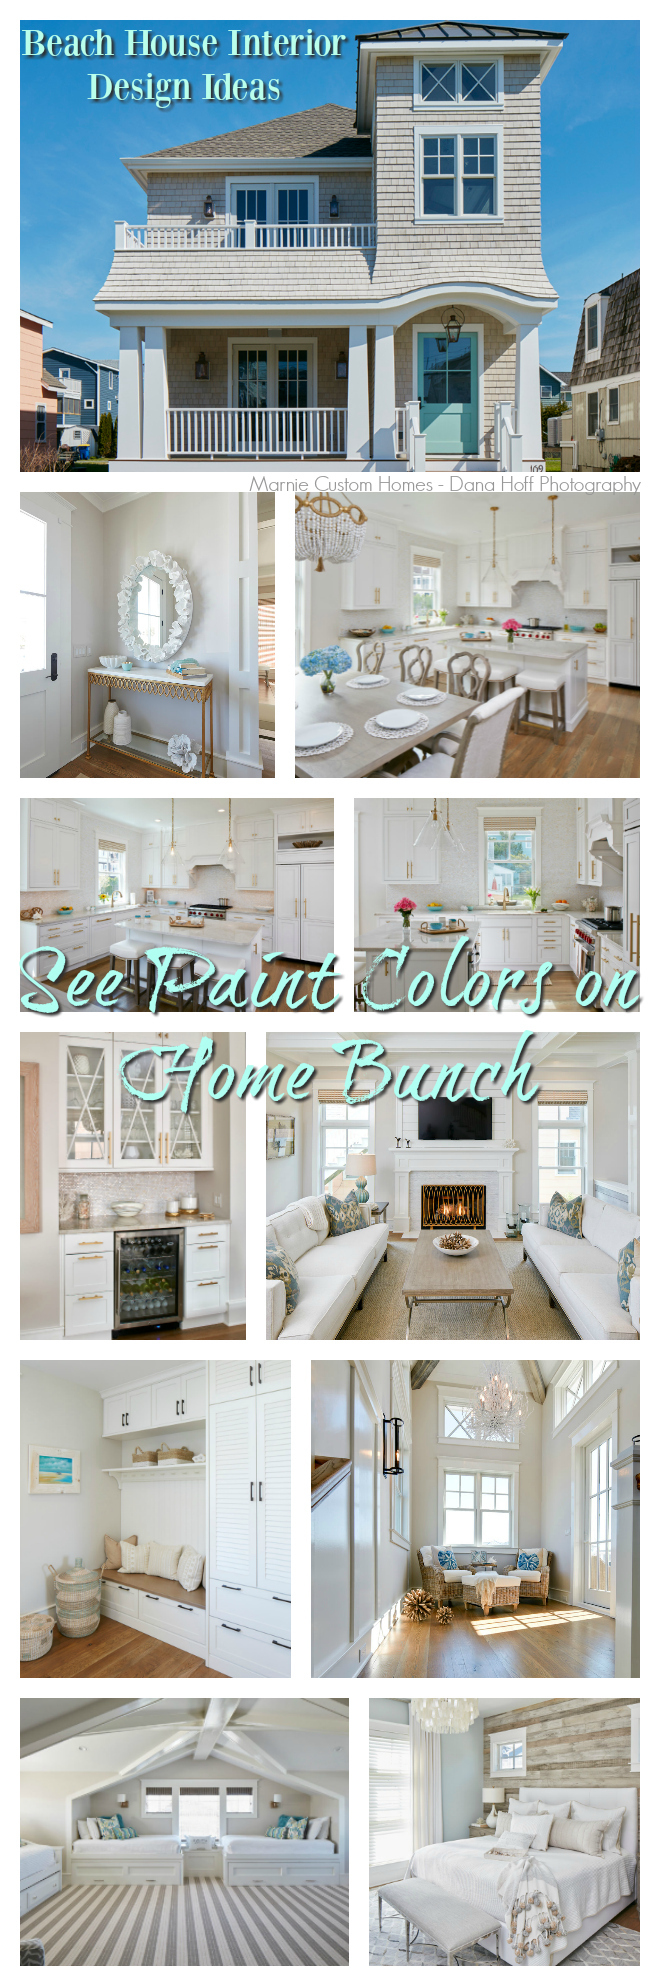 Beautiful Homes Of Instagram Coastal Farmhouse Design Home Bunch Interior Design Ideas